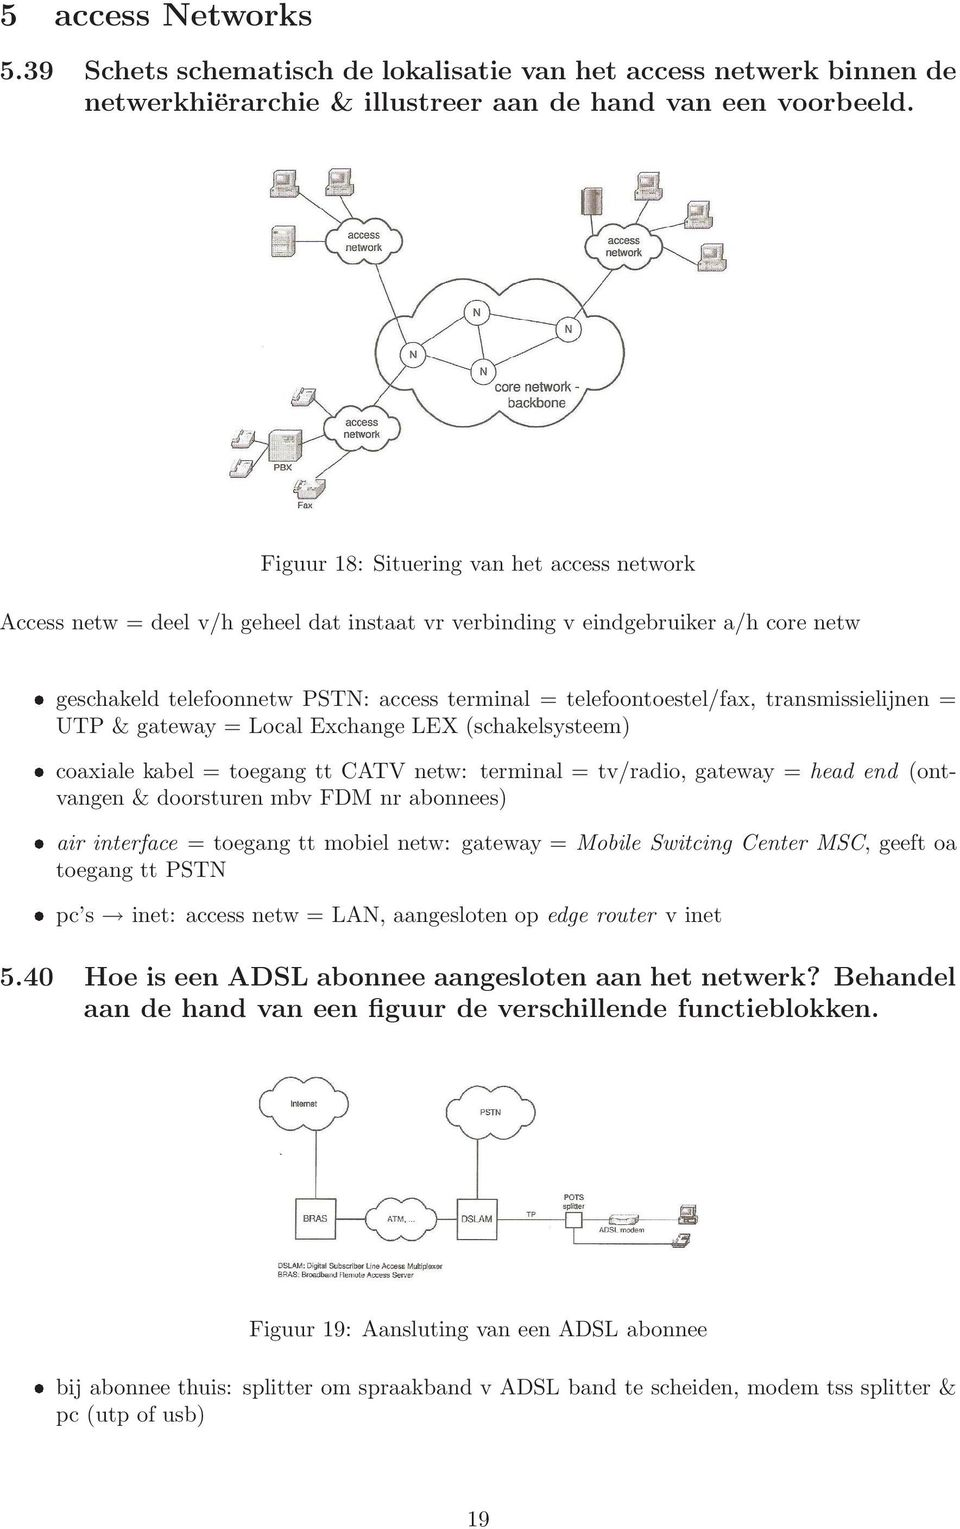 transmissielijnen = UTP & gateway = Local Exchange LEX (schakelsysteem) coaxiale kabel = toegang tt CATV netw: terminal = tv/radio, gateway = head end (ontvangen & doorsturen mbv FDM nr abonnees) air